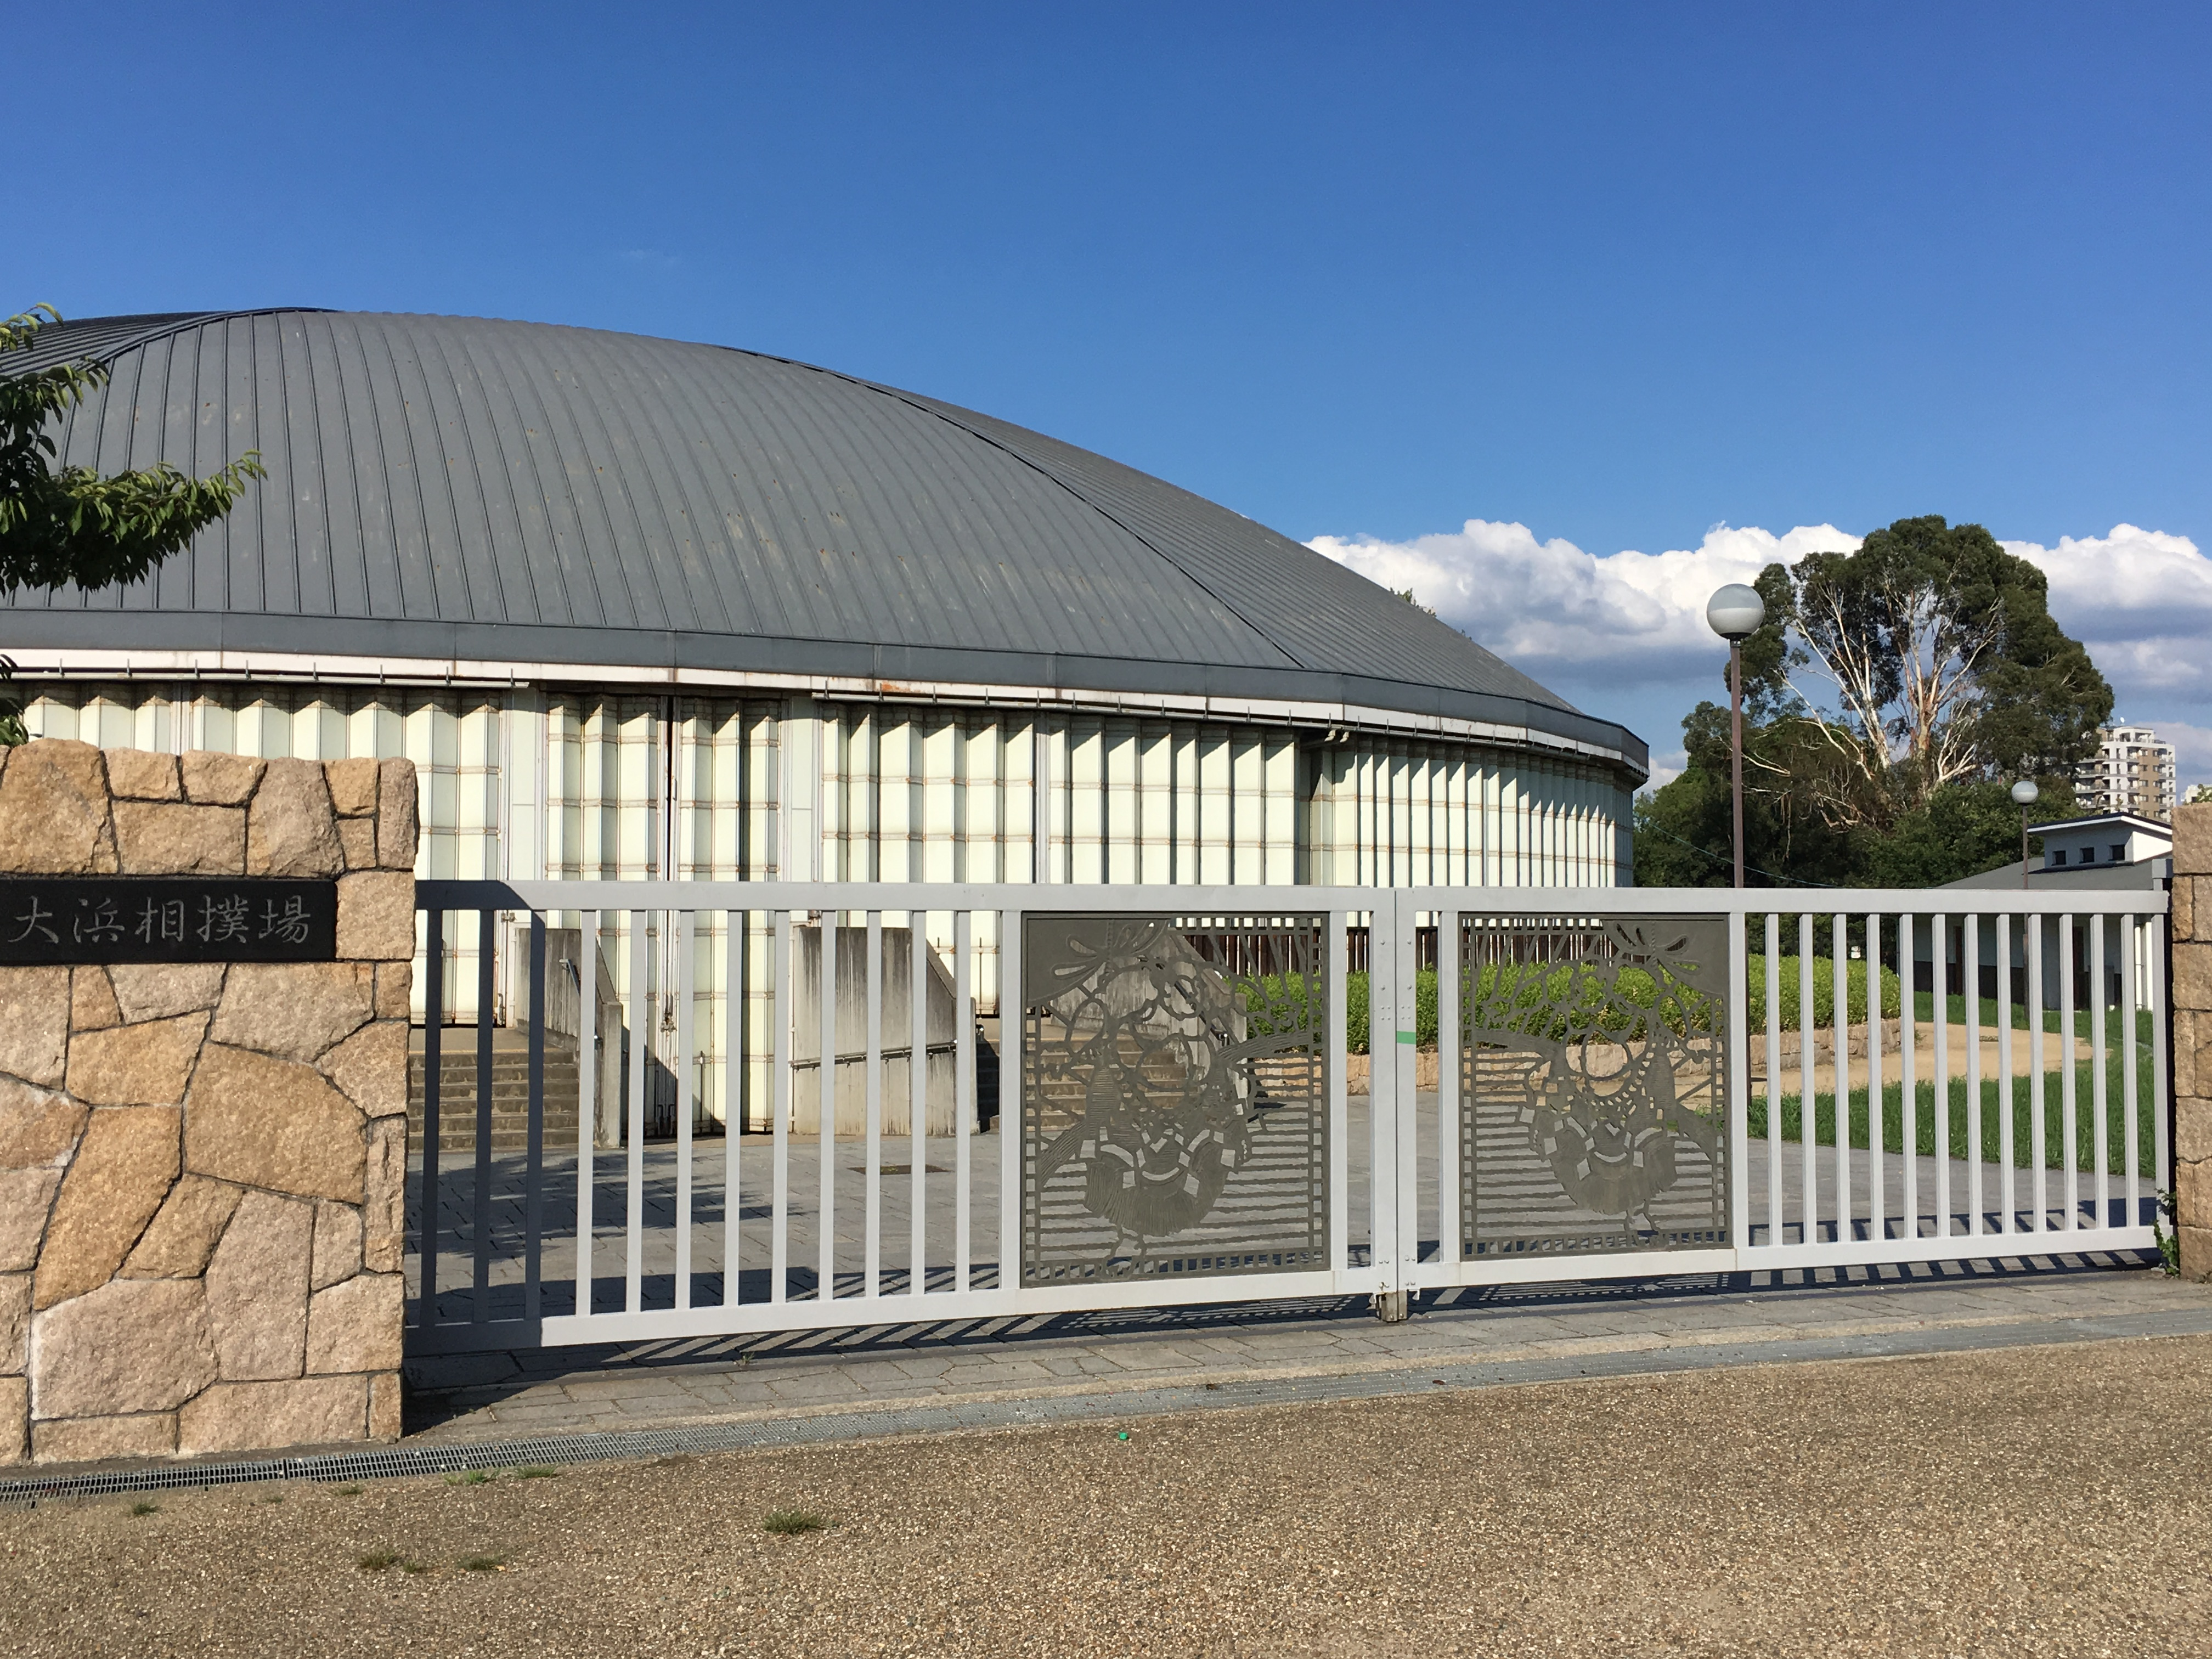 closed gates outside of youth sumo ring